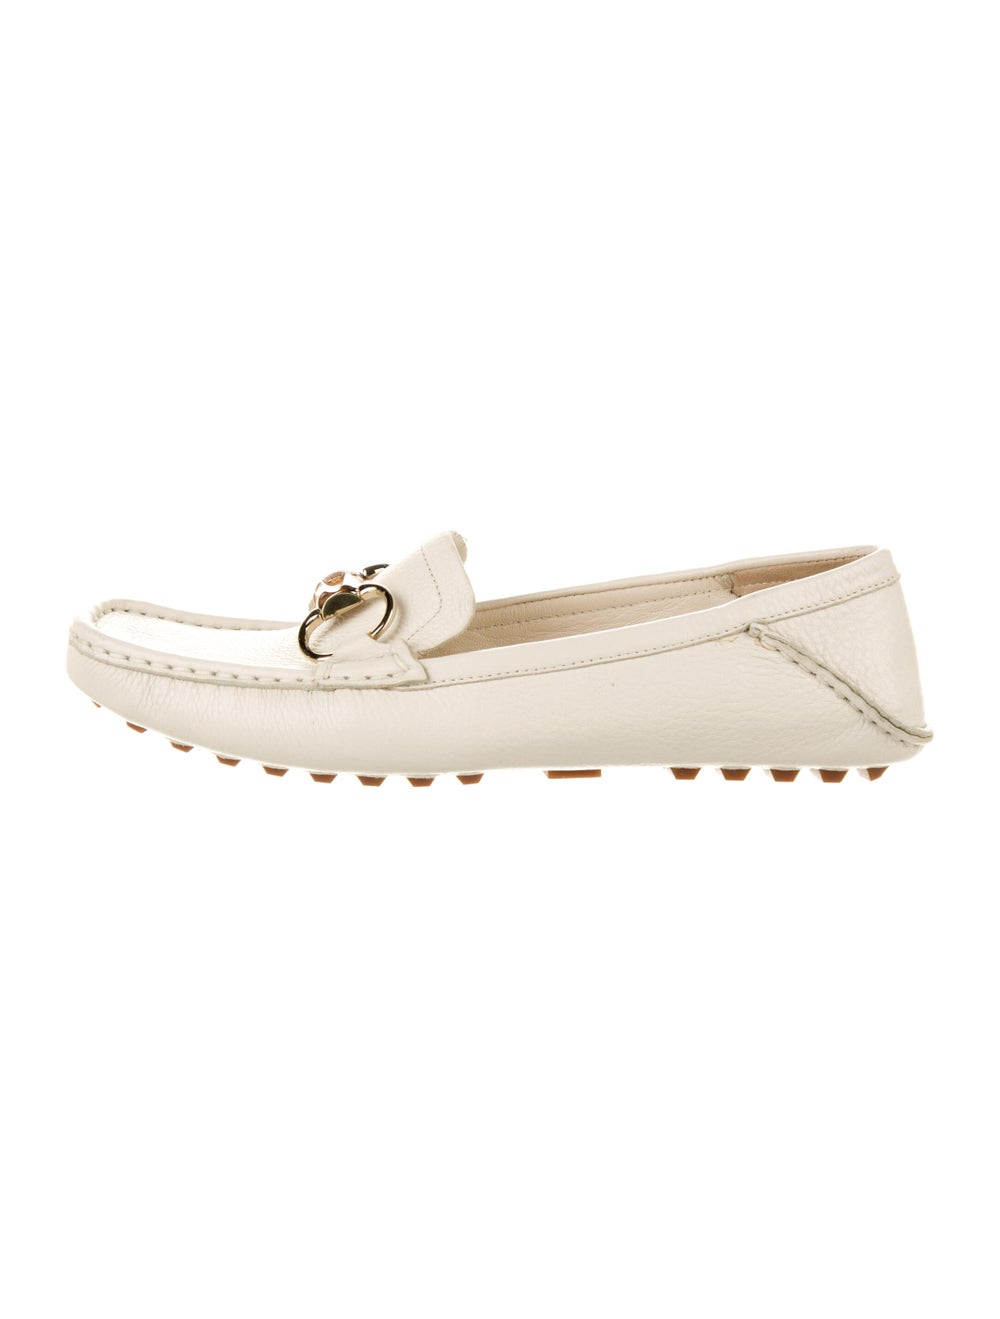 Gucci Horsebit Accent Leather Loafers White - image 1